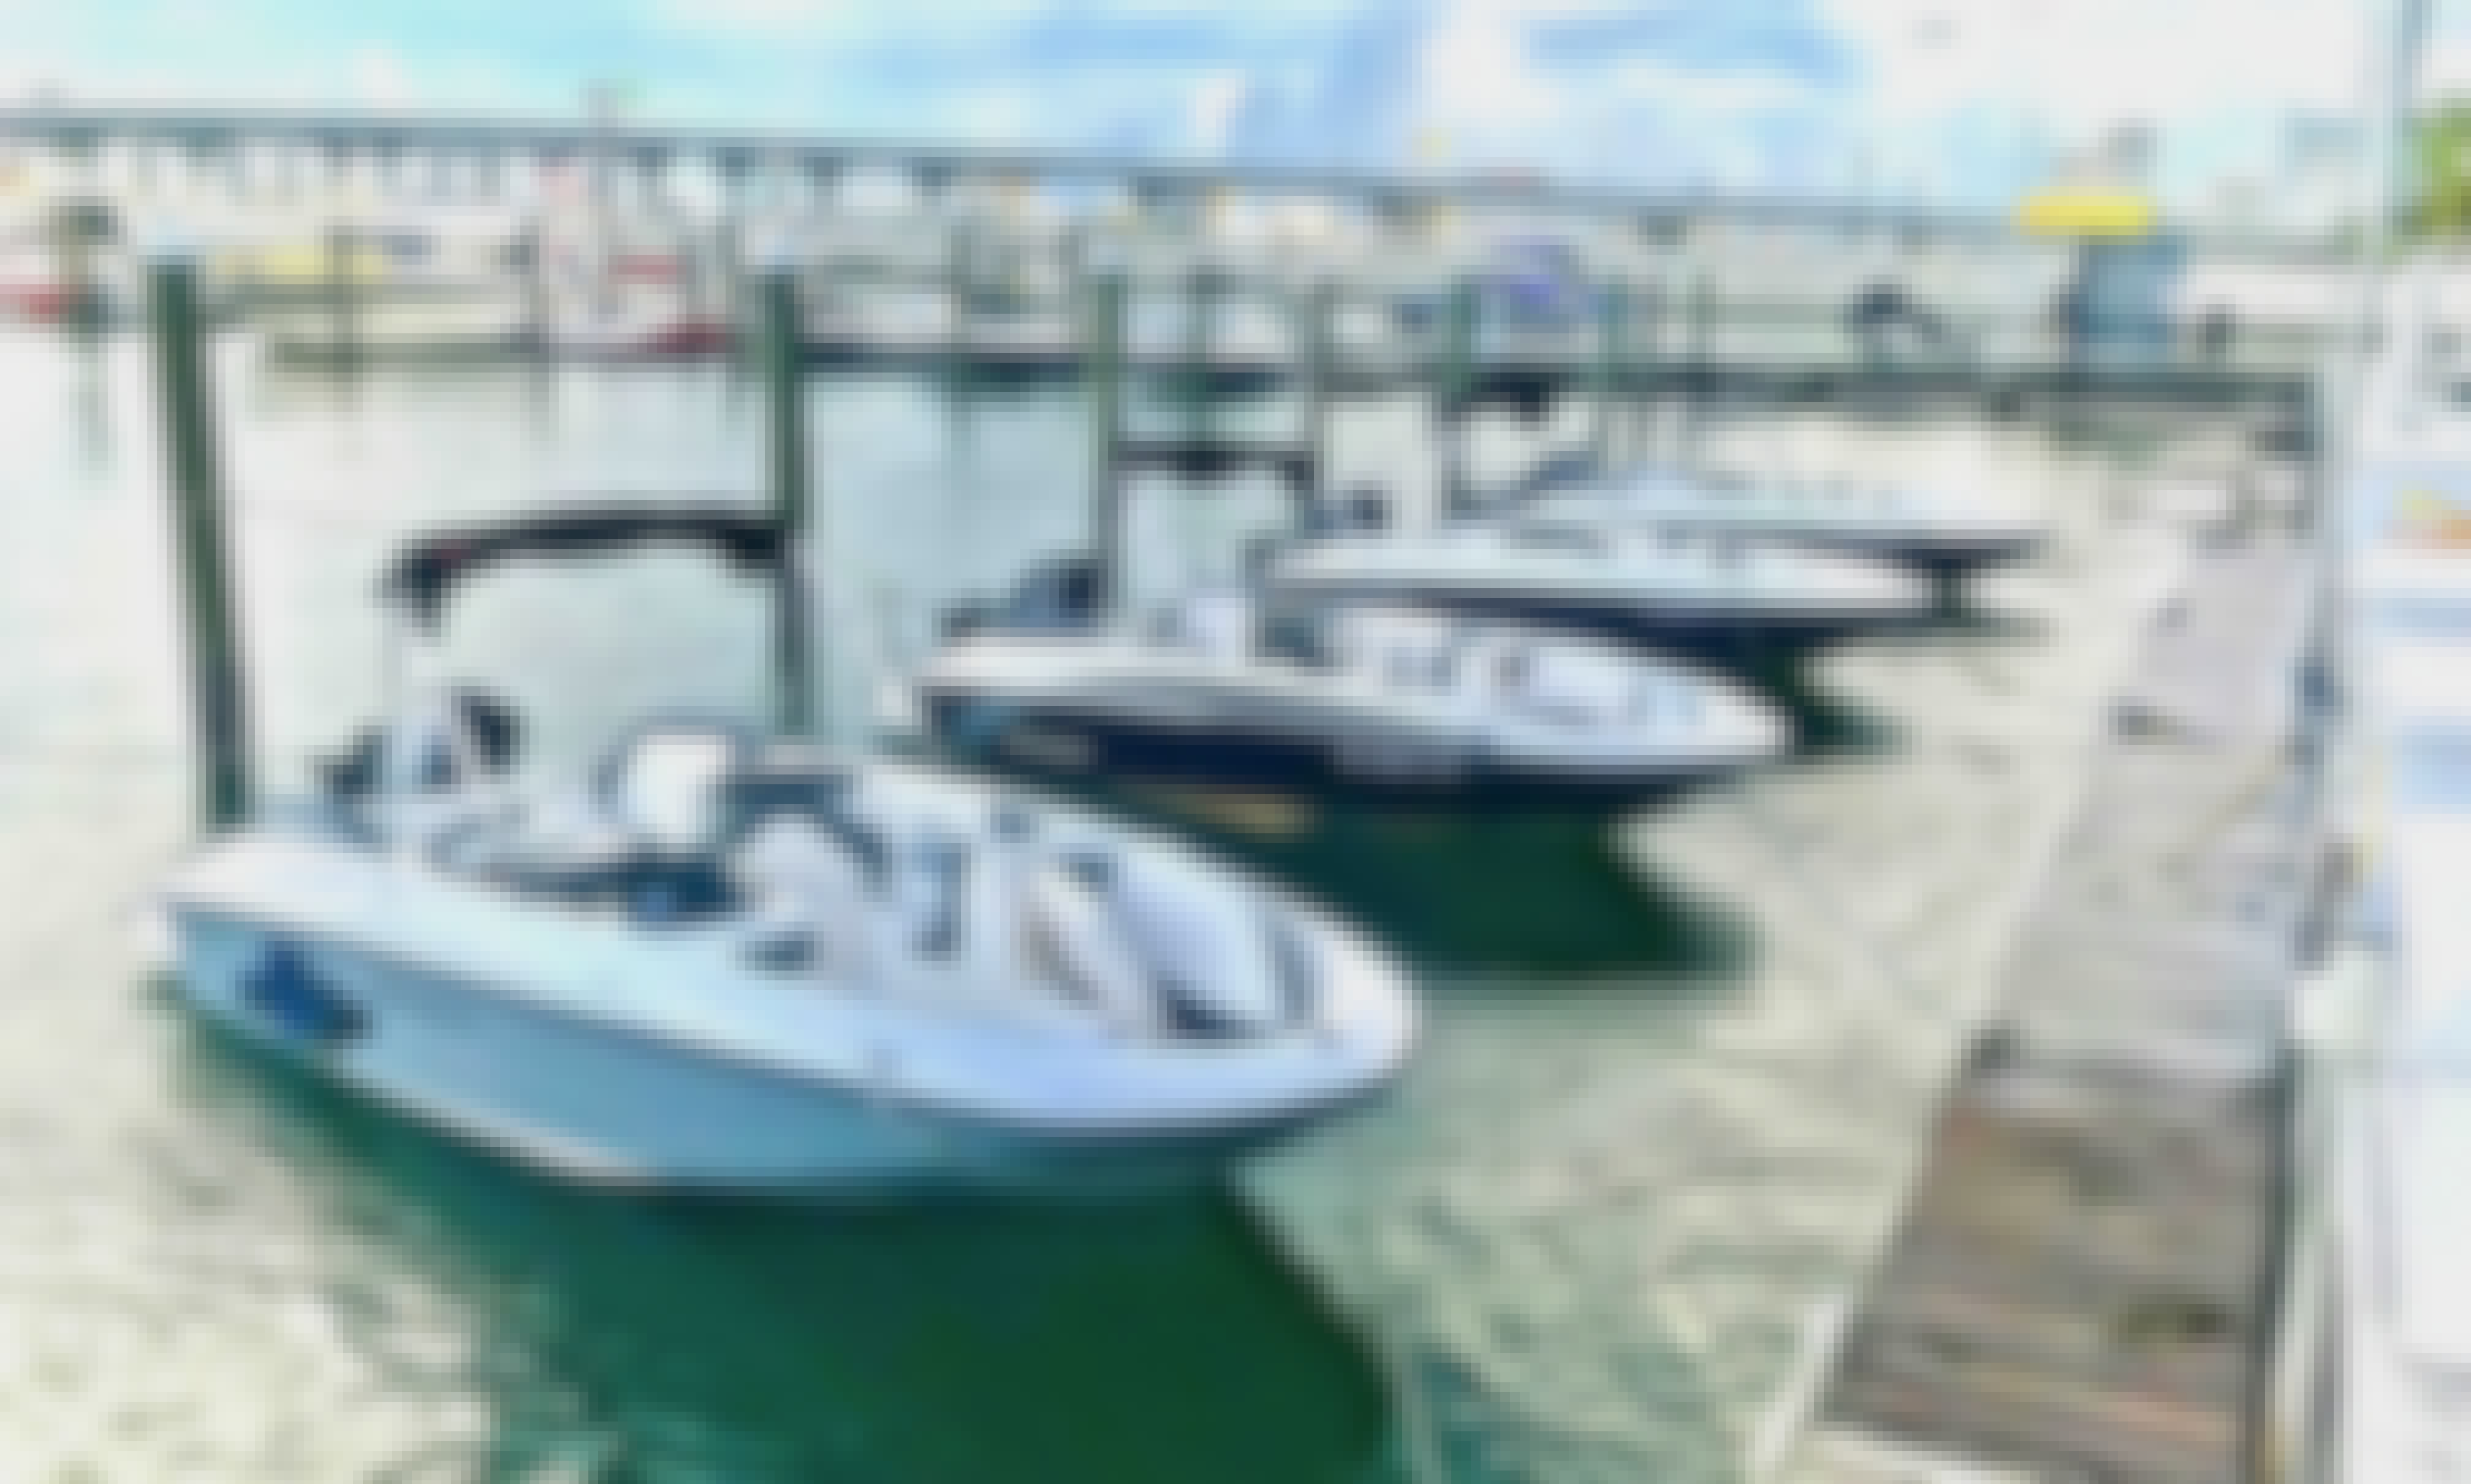 Be a Captain of Bayliner Element 16 in Miami, Florida! (2, 4, 7 or 8 Hour spots available)